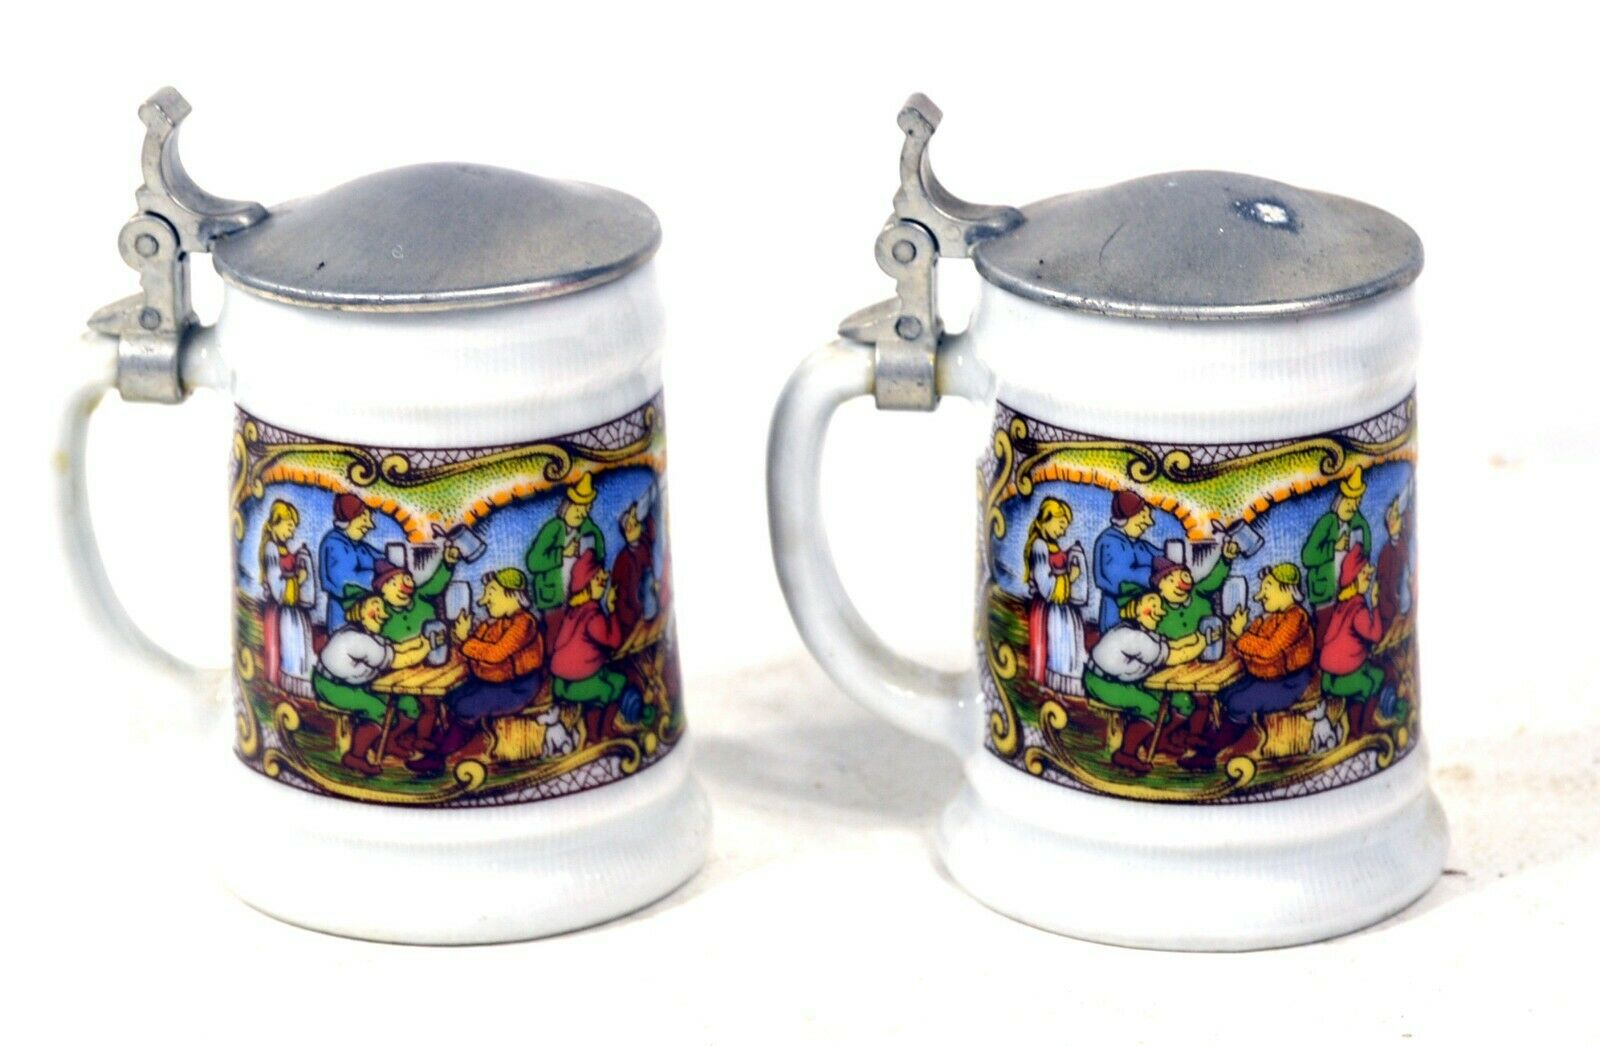 Miniature Beer Steins - 3in. Tall - Tavern Scene Shot Glasses (2)